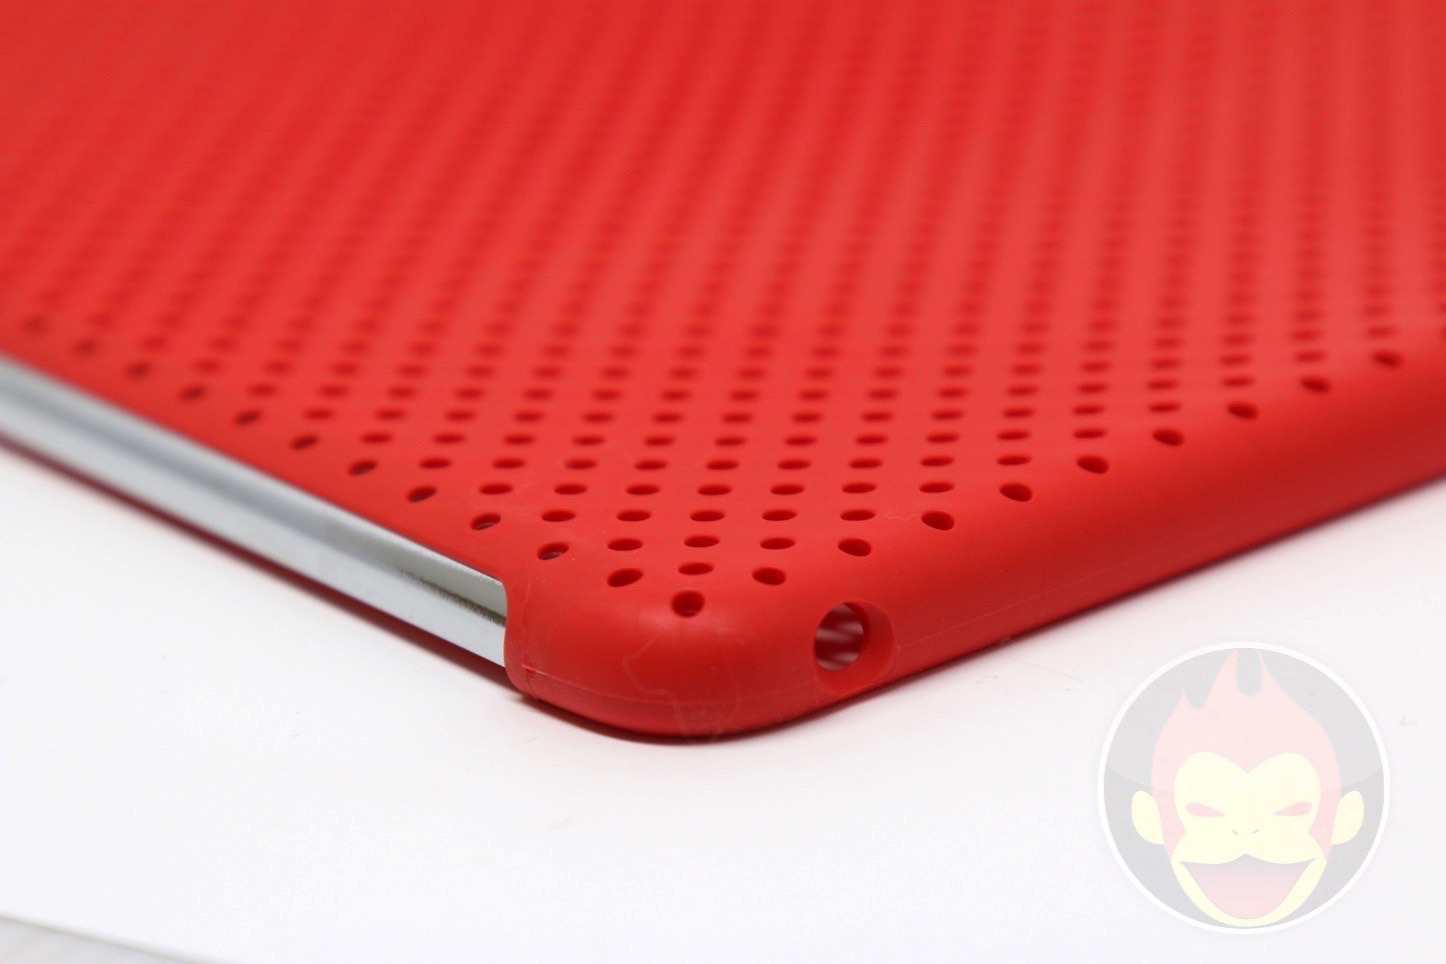 AndMesh-Mesh-Case-for-iPad-Air-2-03.JPG